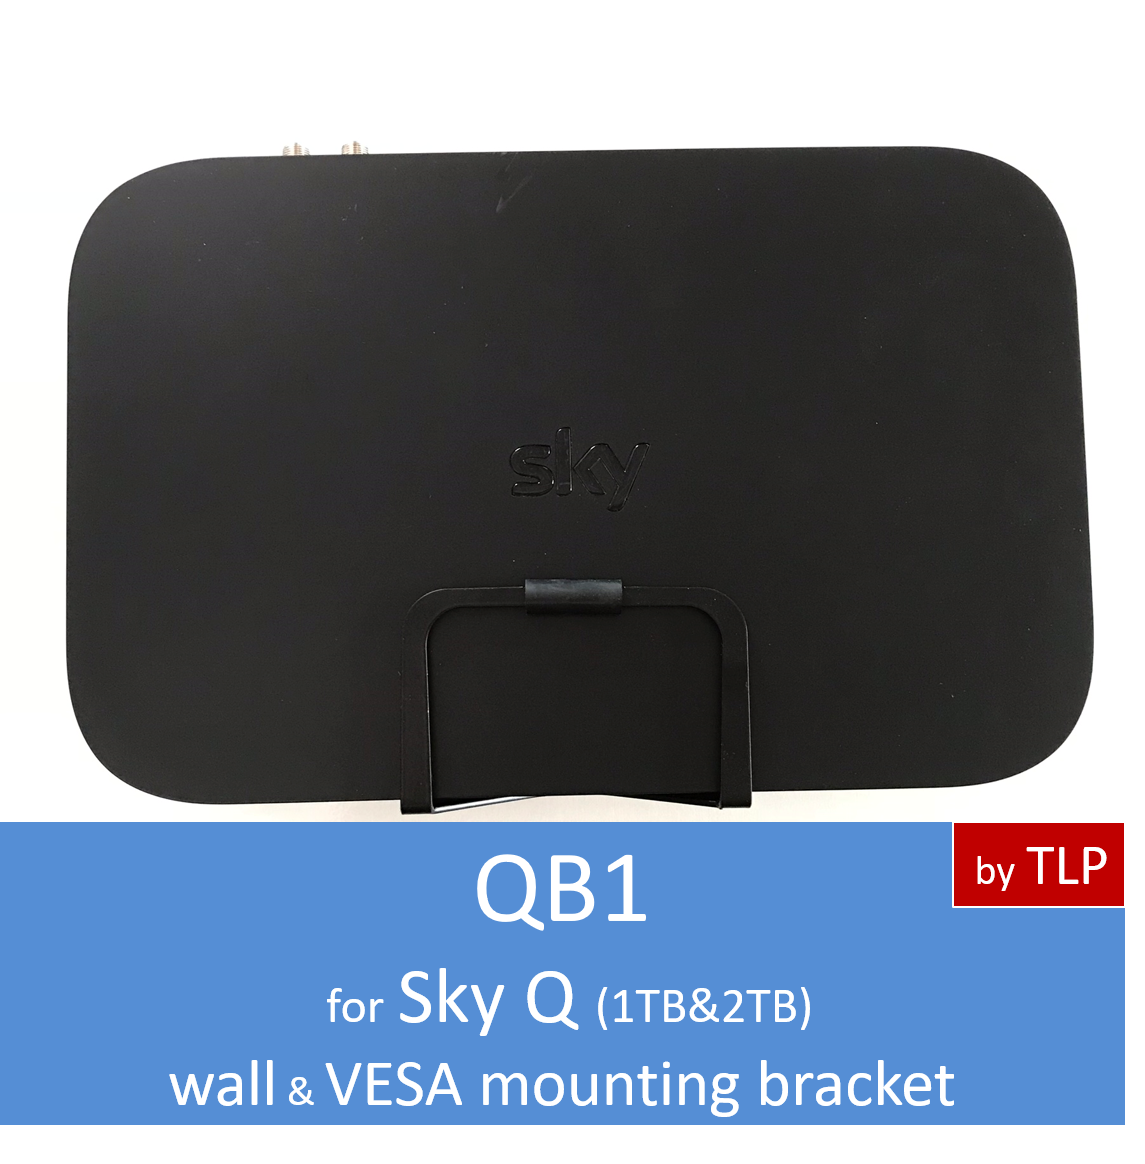 http://triplelinkproducts.co.uk/wp-content/uploads/2018/07/QB1-for-Sky-Q.png